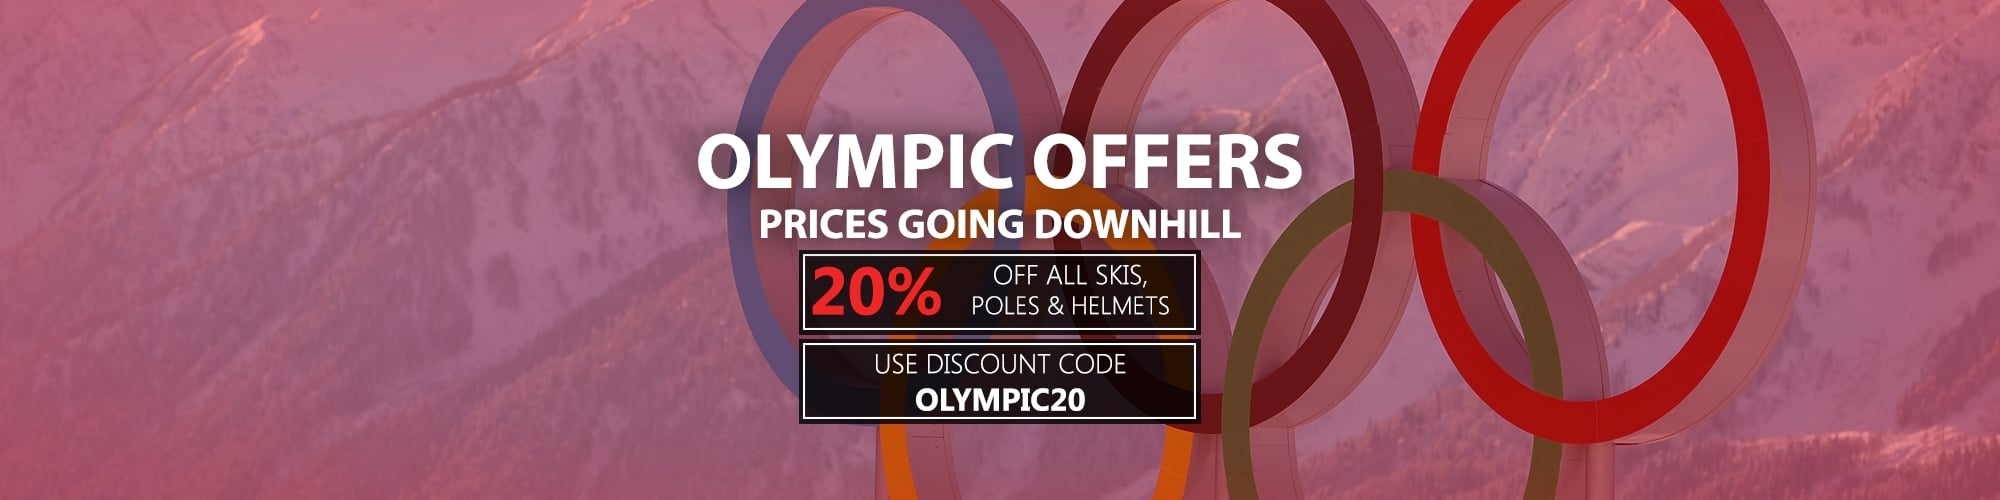 Olympic Offers 2018 - Prices Going Downhill